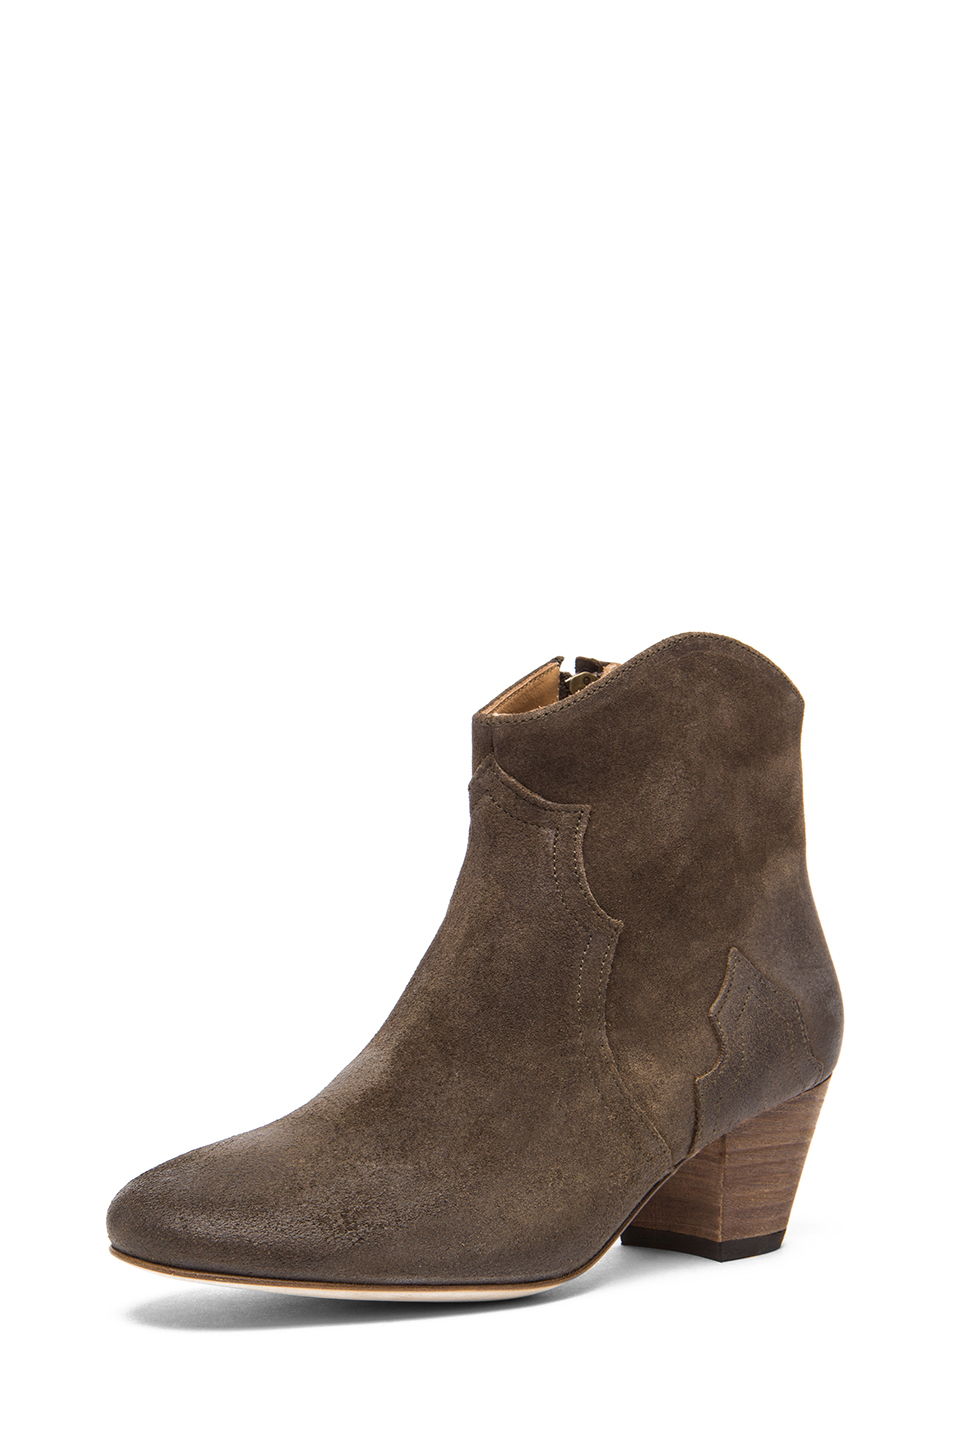 Isabel Marant|Dicker Velvet Boot in Bronze